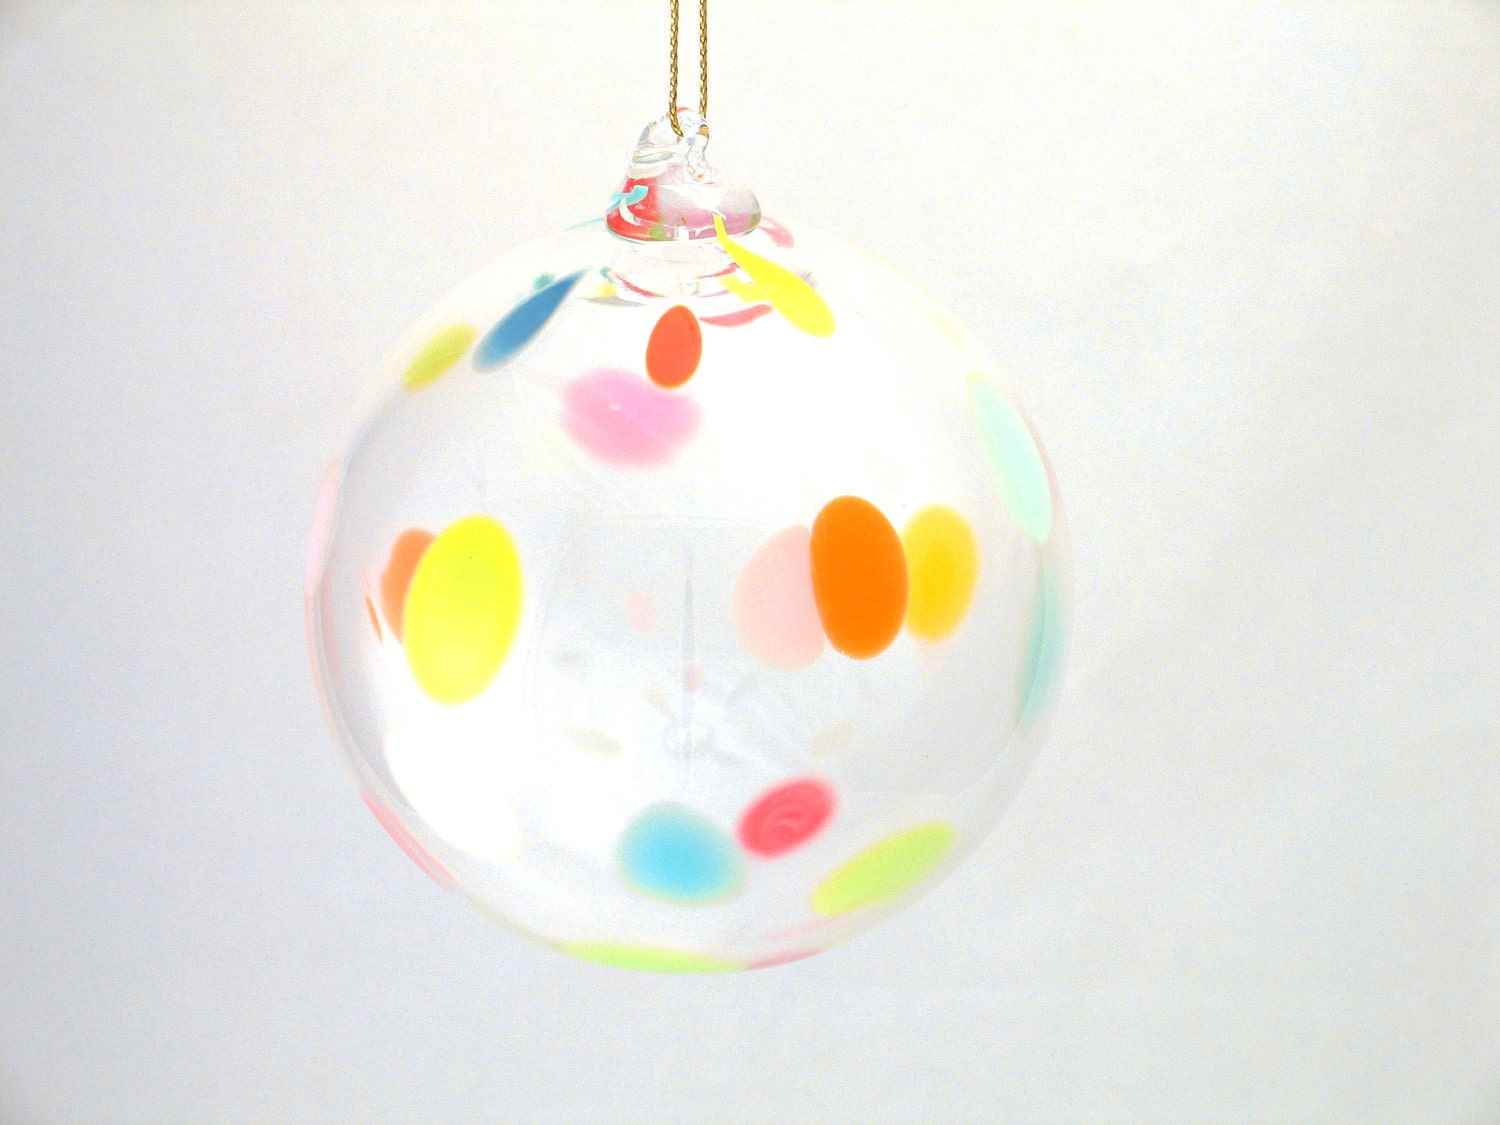 Glass Christmas Ornament Suncatcher - Colorful Polka Dots - Glass Ball - orange yellow pink blue - dreamt ateam oht - Under 25